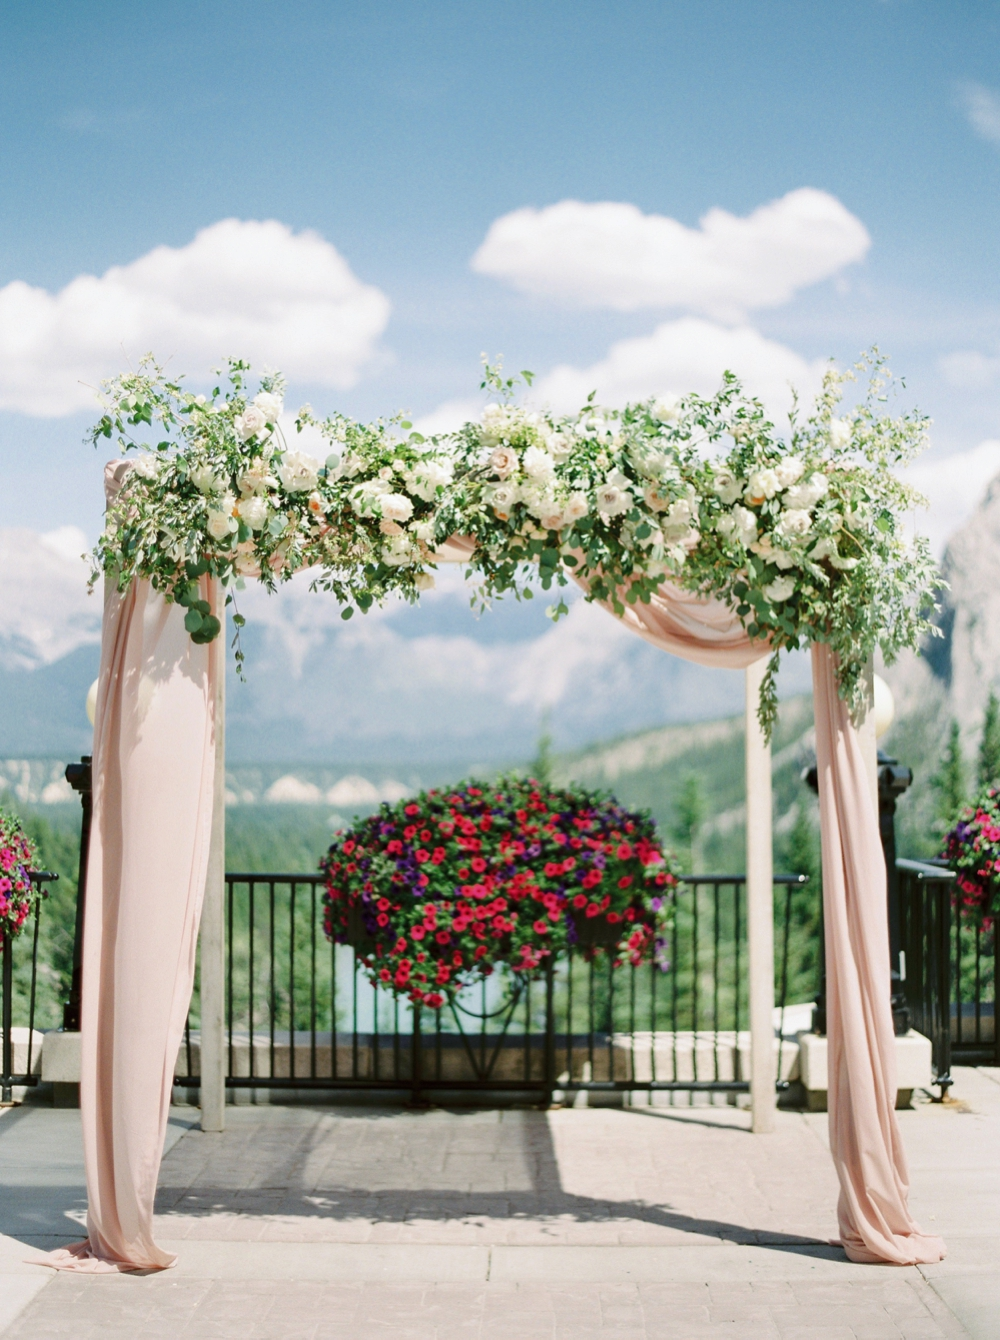 Ceremony floral arch | fairmont banff springs hotel wedding ceremony canadian rocky mountains | banff wedding photographers